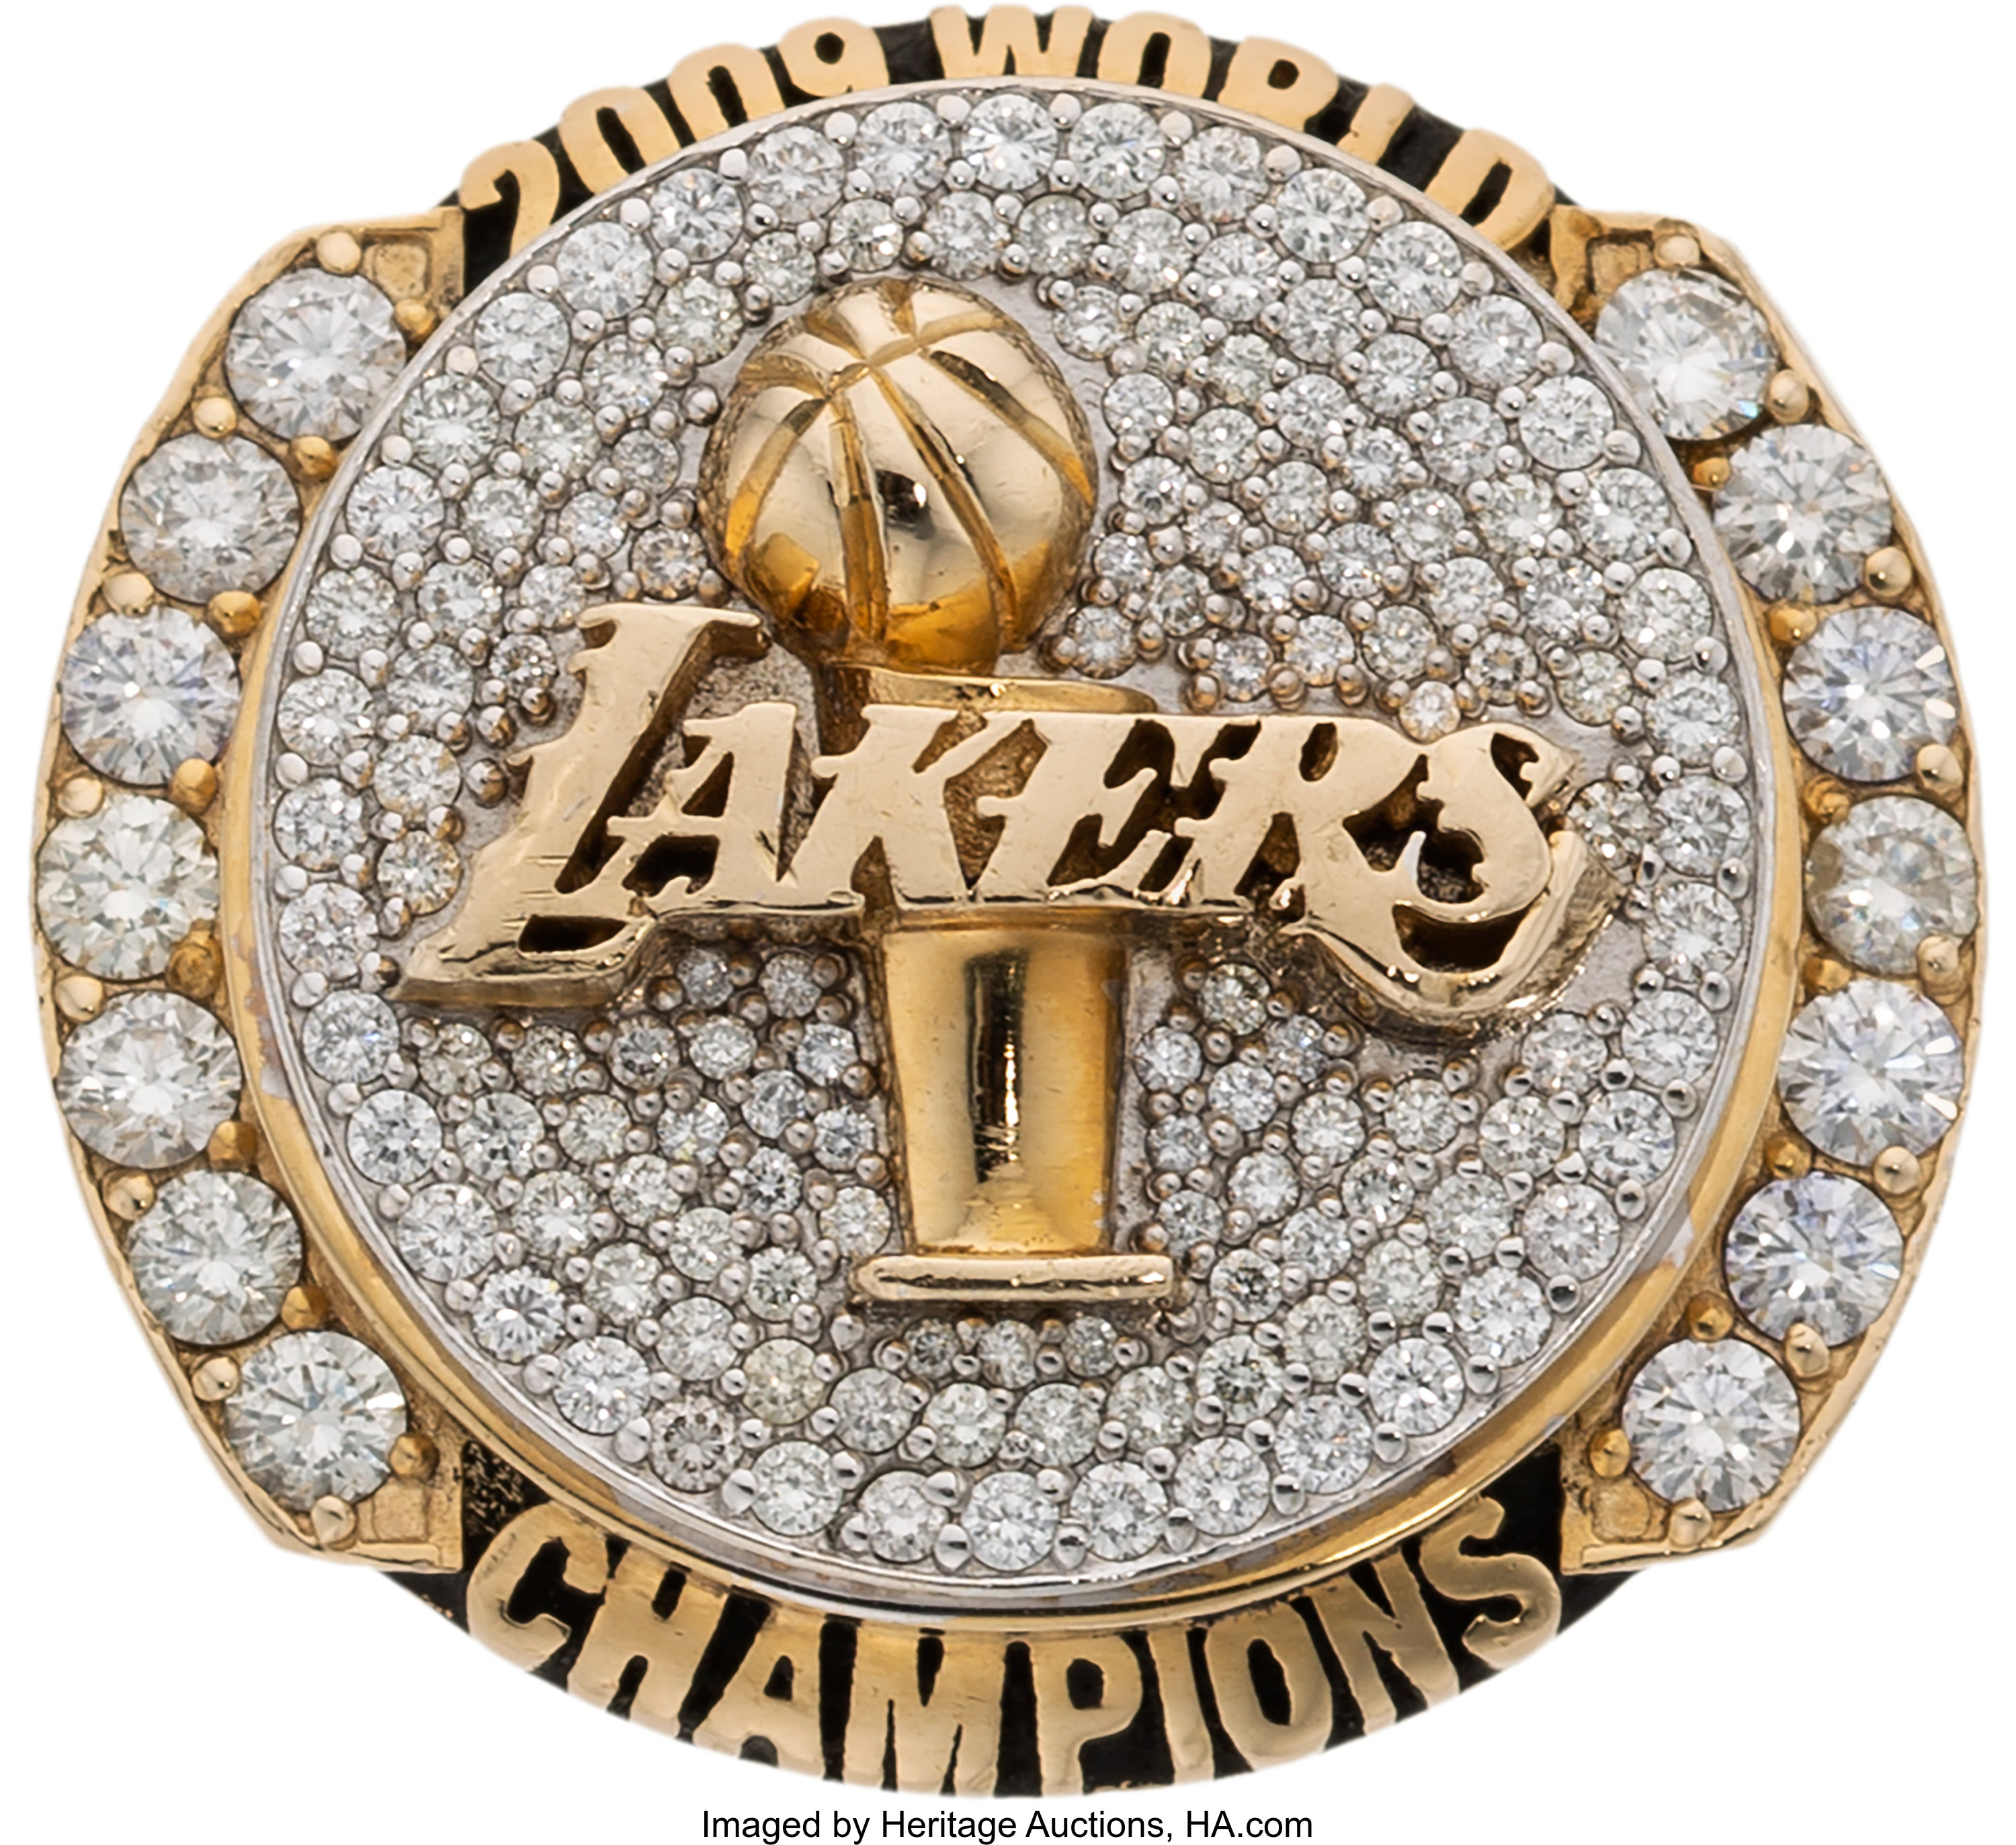 2009 Los Angeles Lakers Nba Championship Ring Presented To Forward Lot 50122 Heritage Auctions